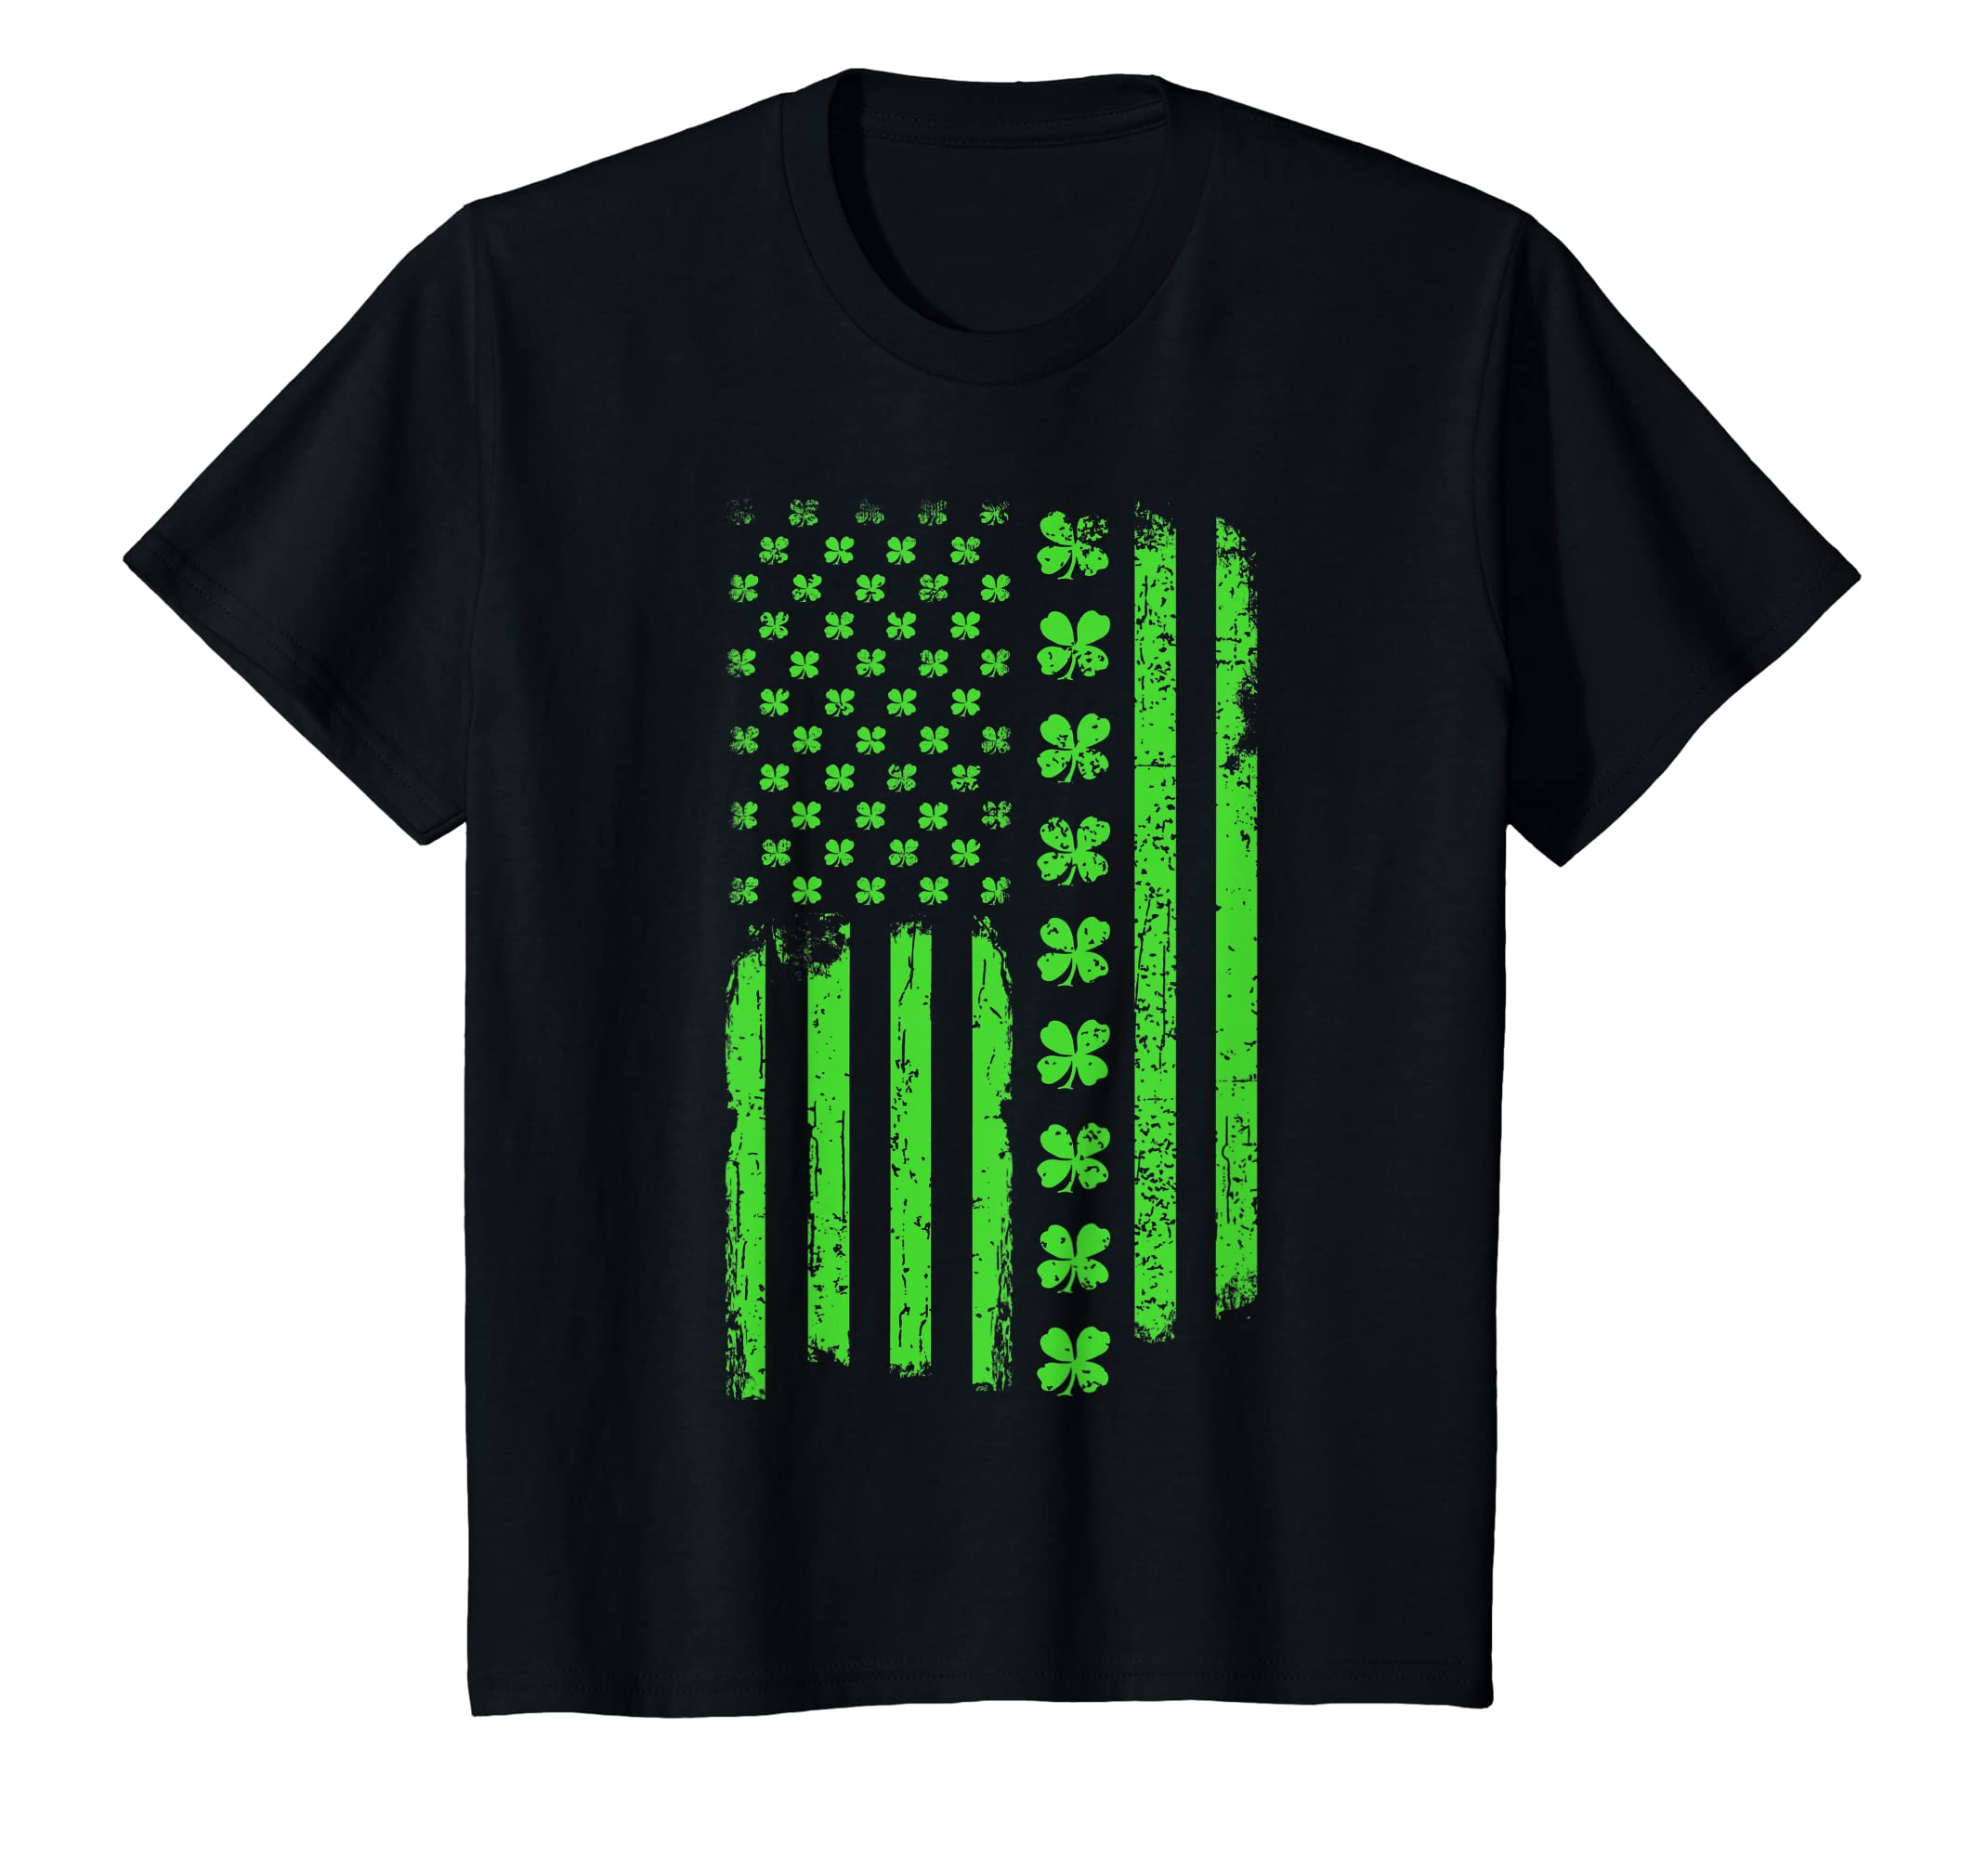 fd806e22 Amazon.com: St Patricks Day Irish American Flag T-Shirt: Clothing